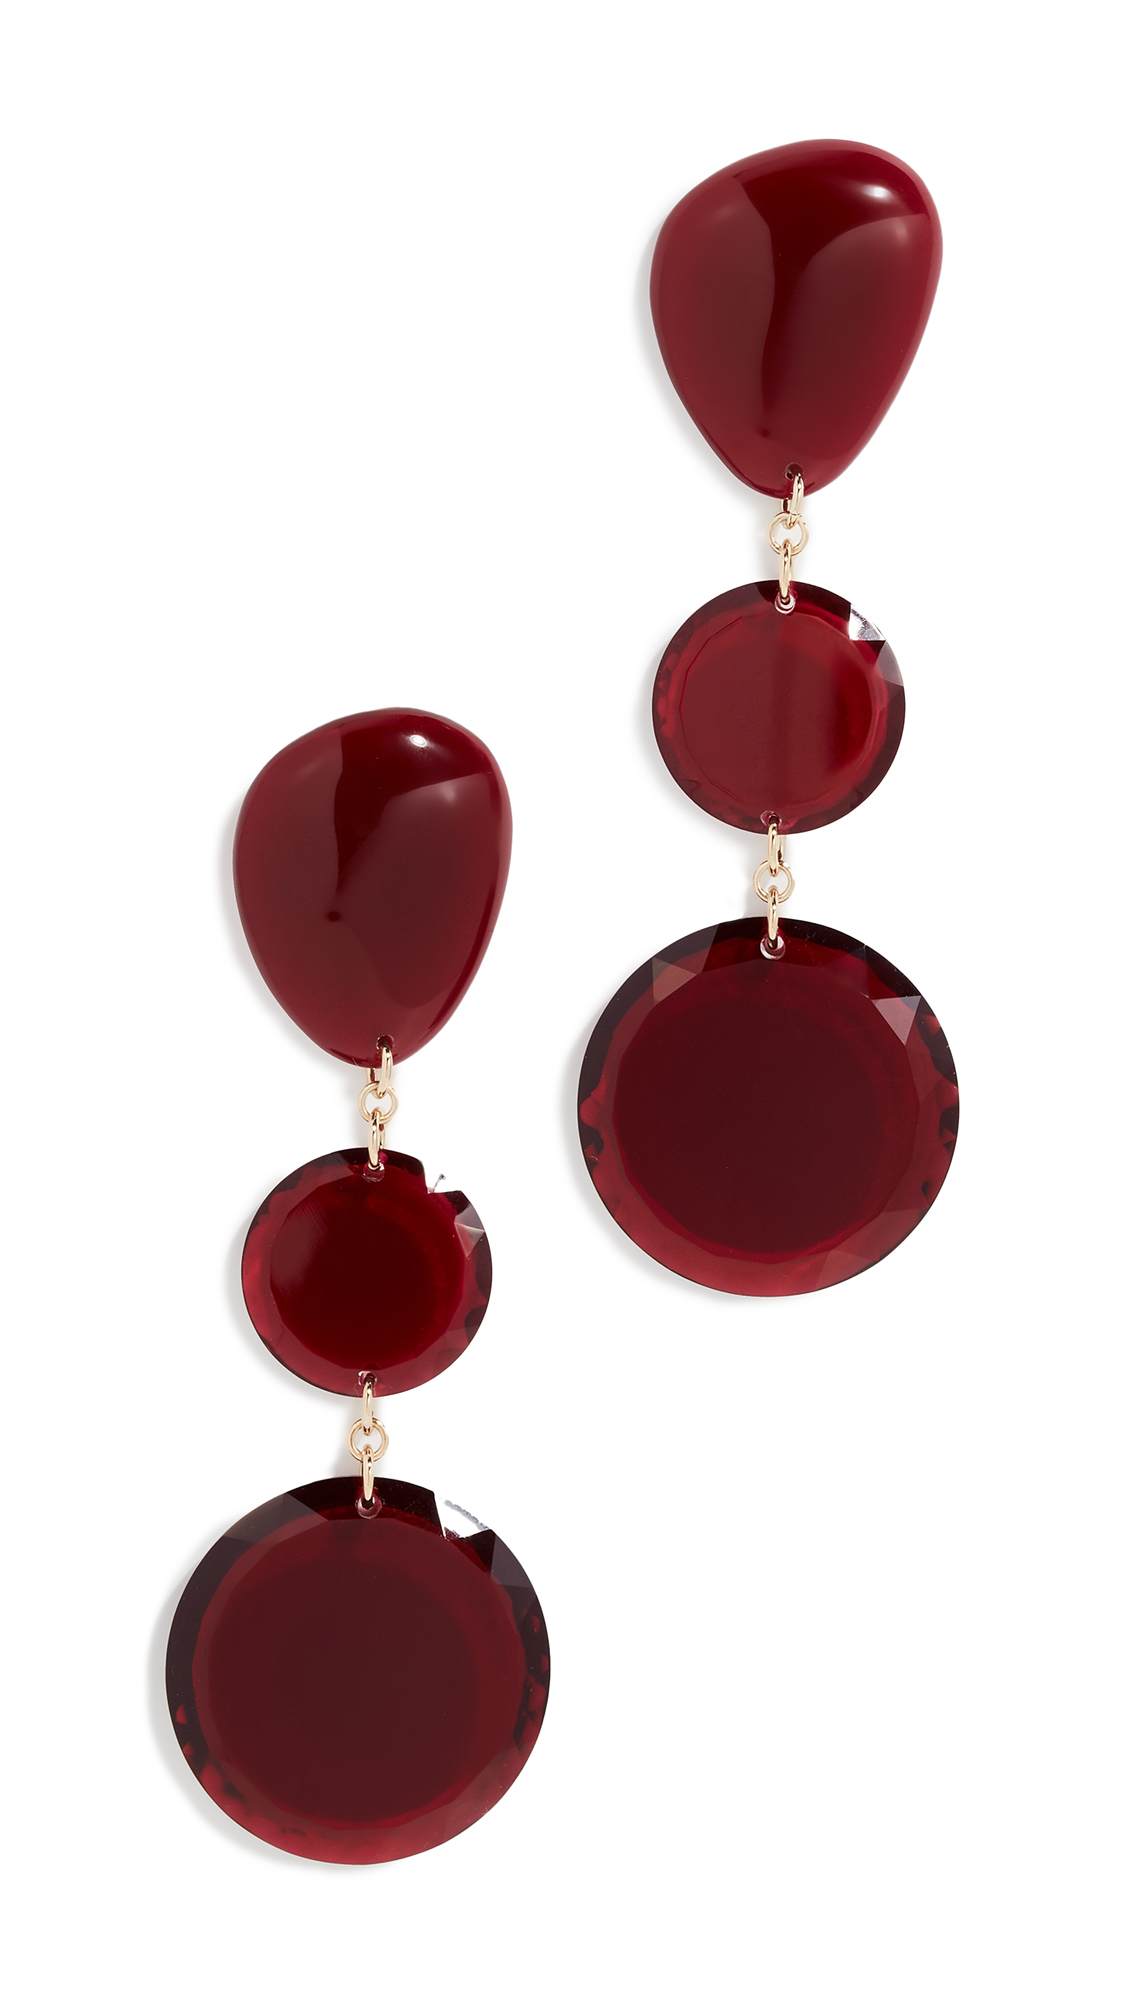 Isabel Marant Boucle Oreille Triple Drop Earrings In Red